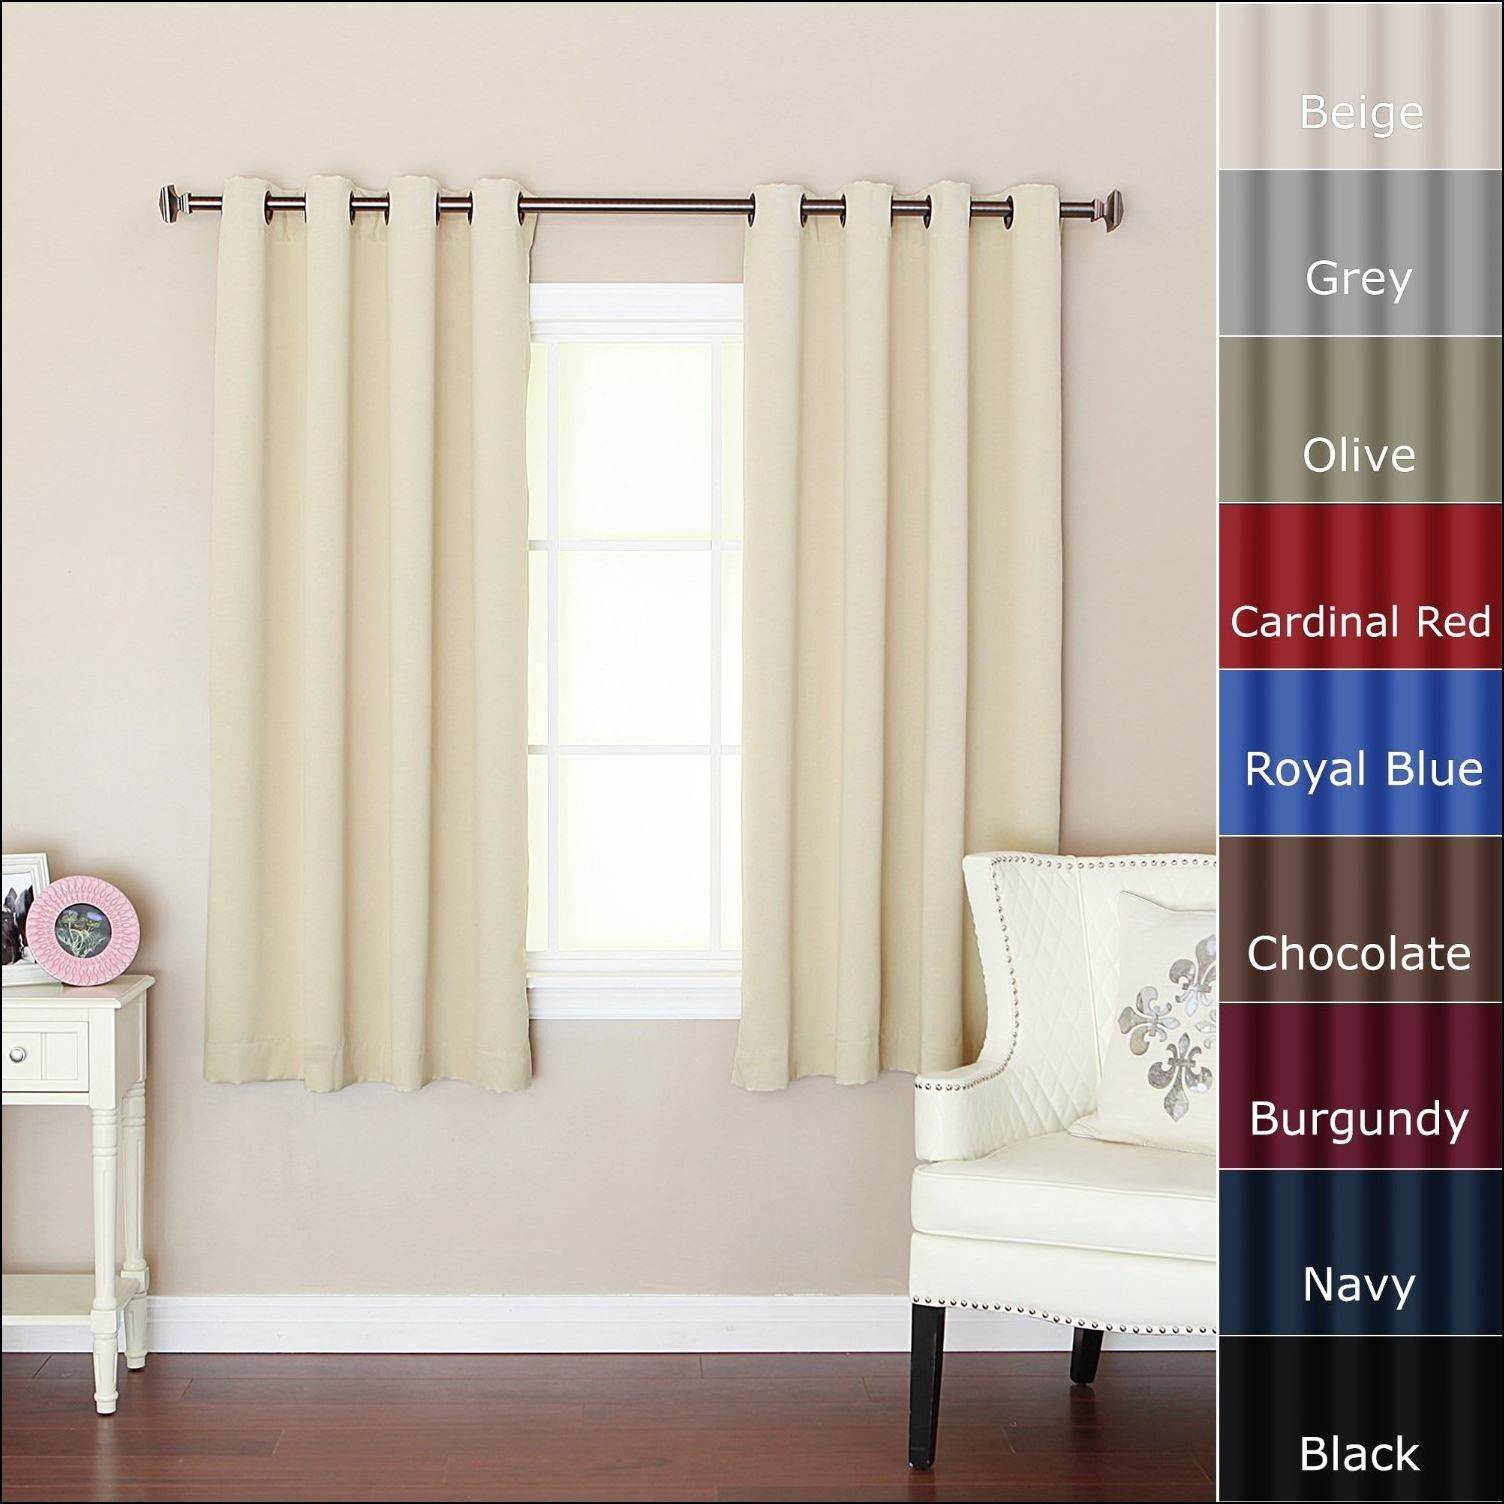 cool-design-ideas-of-window-curtain-with-beige-color-curtains-and